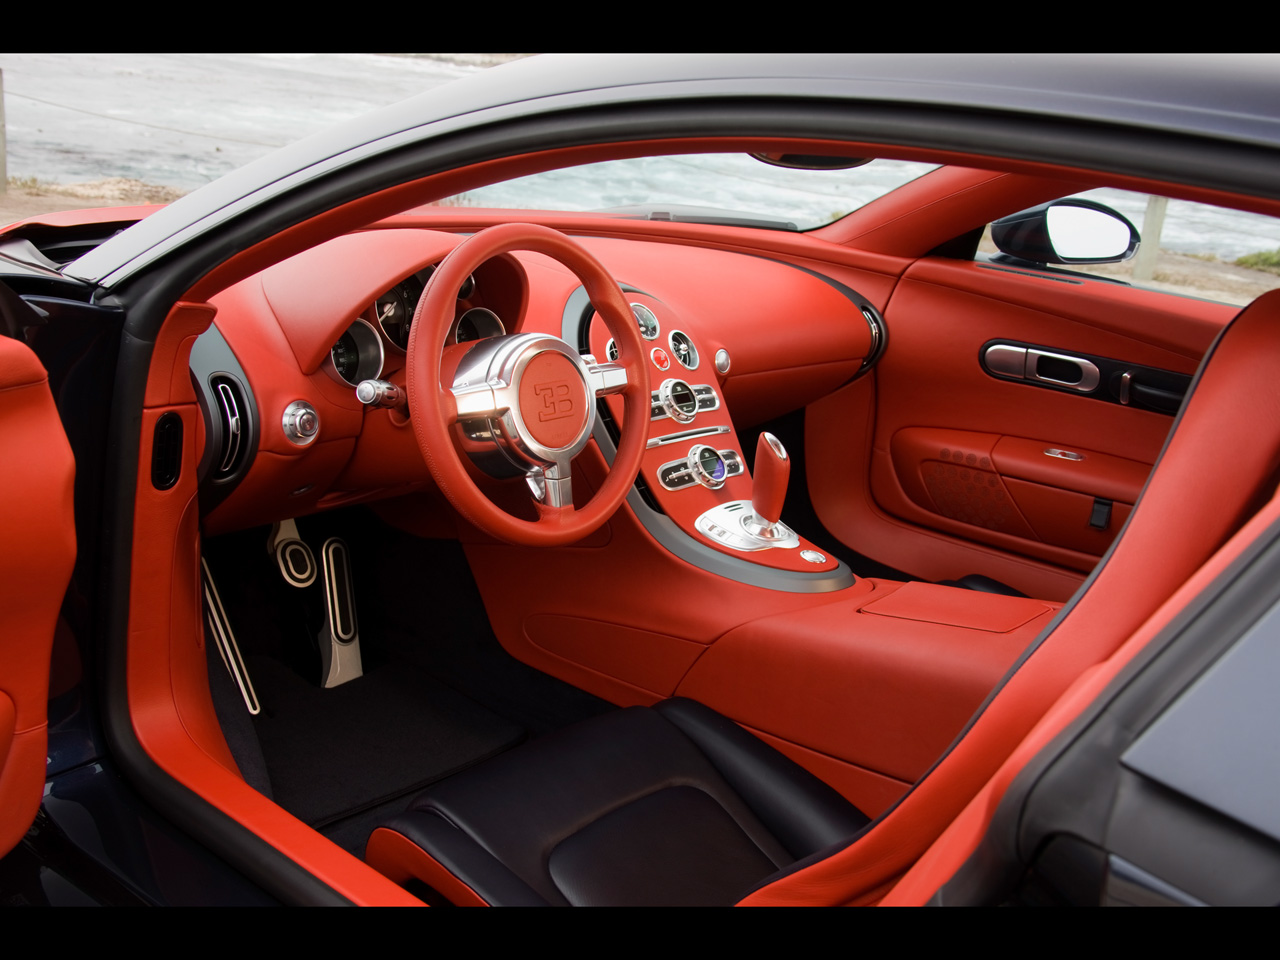 Bugatti veyron interior world of cars for Dash designs car interior shop